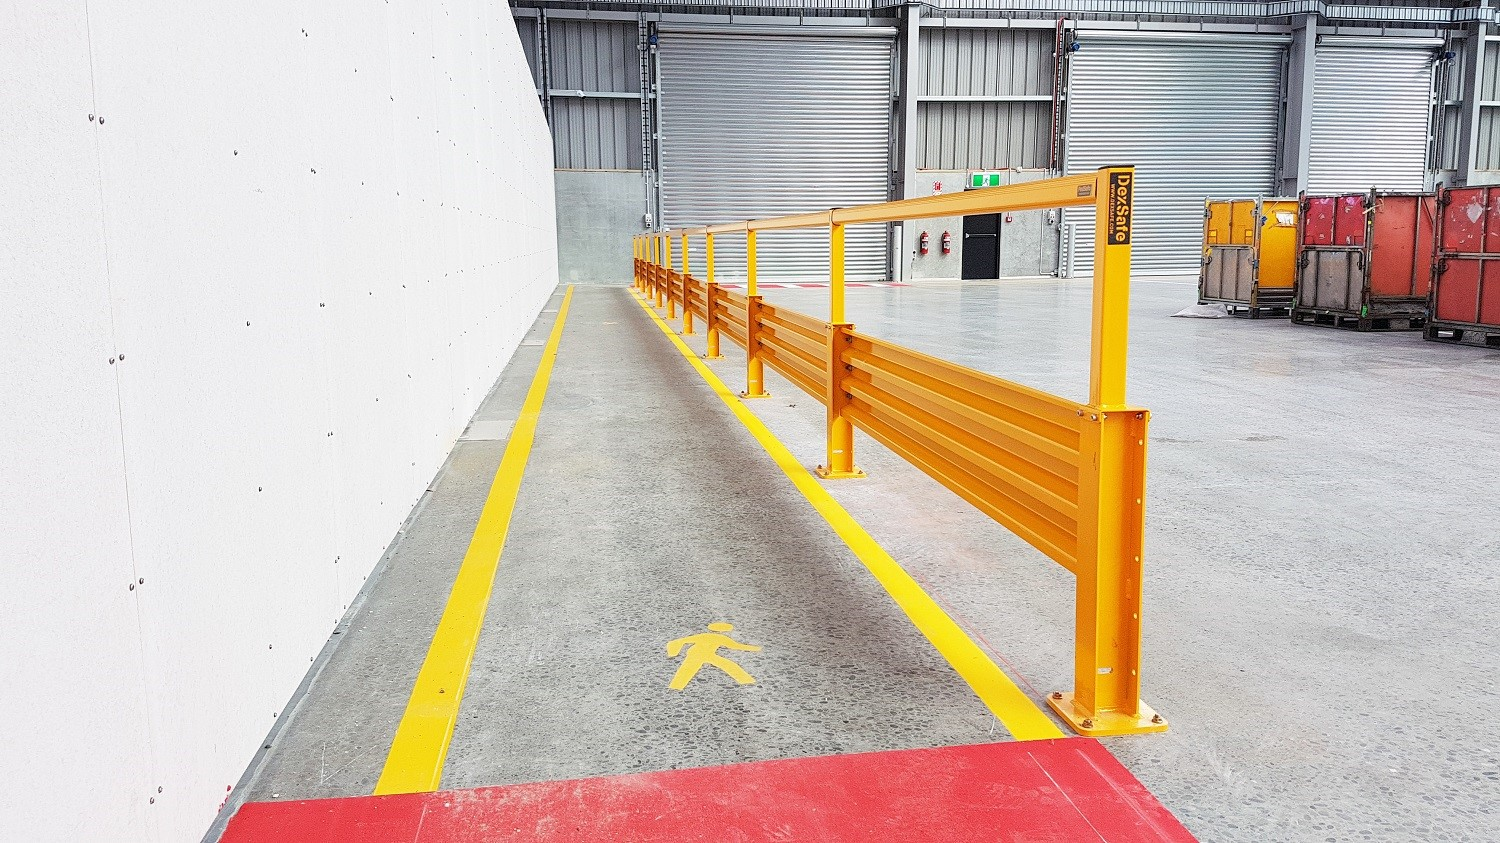 Barriers and line markings create a safe workplace